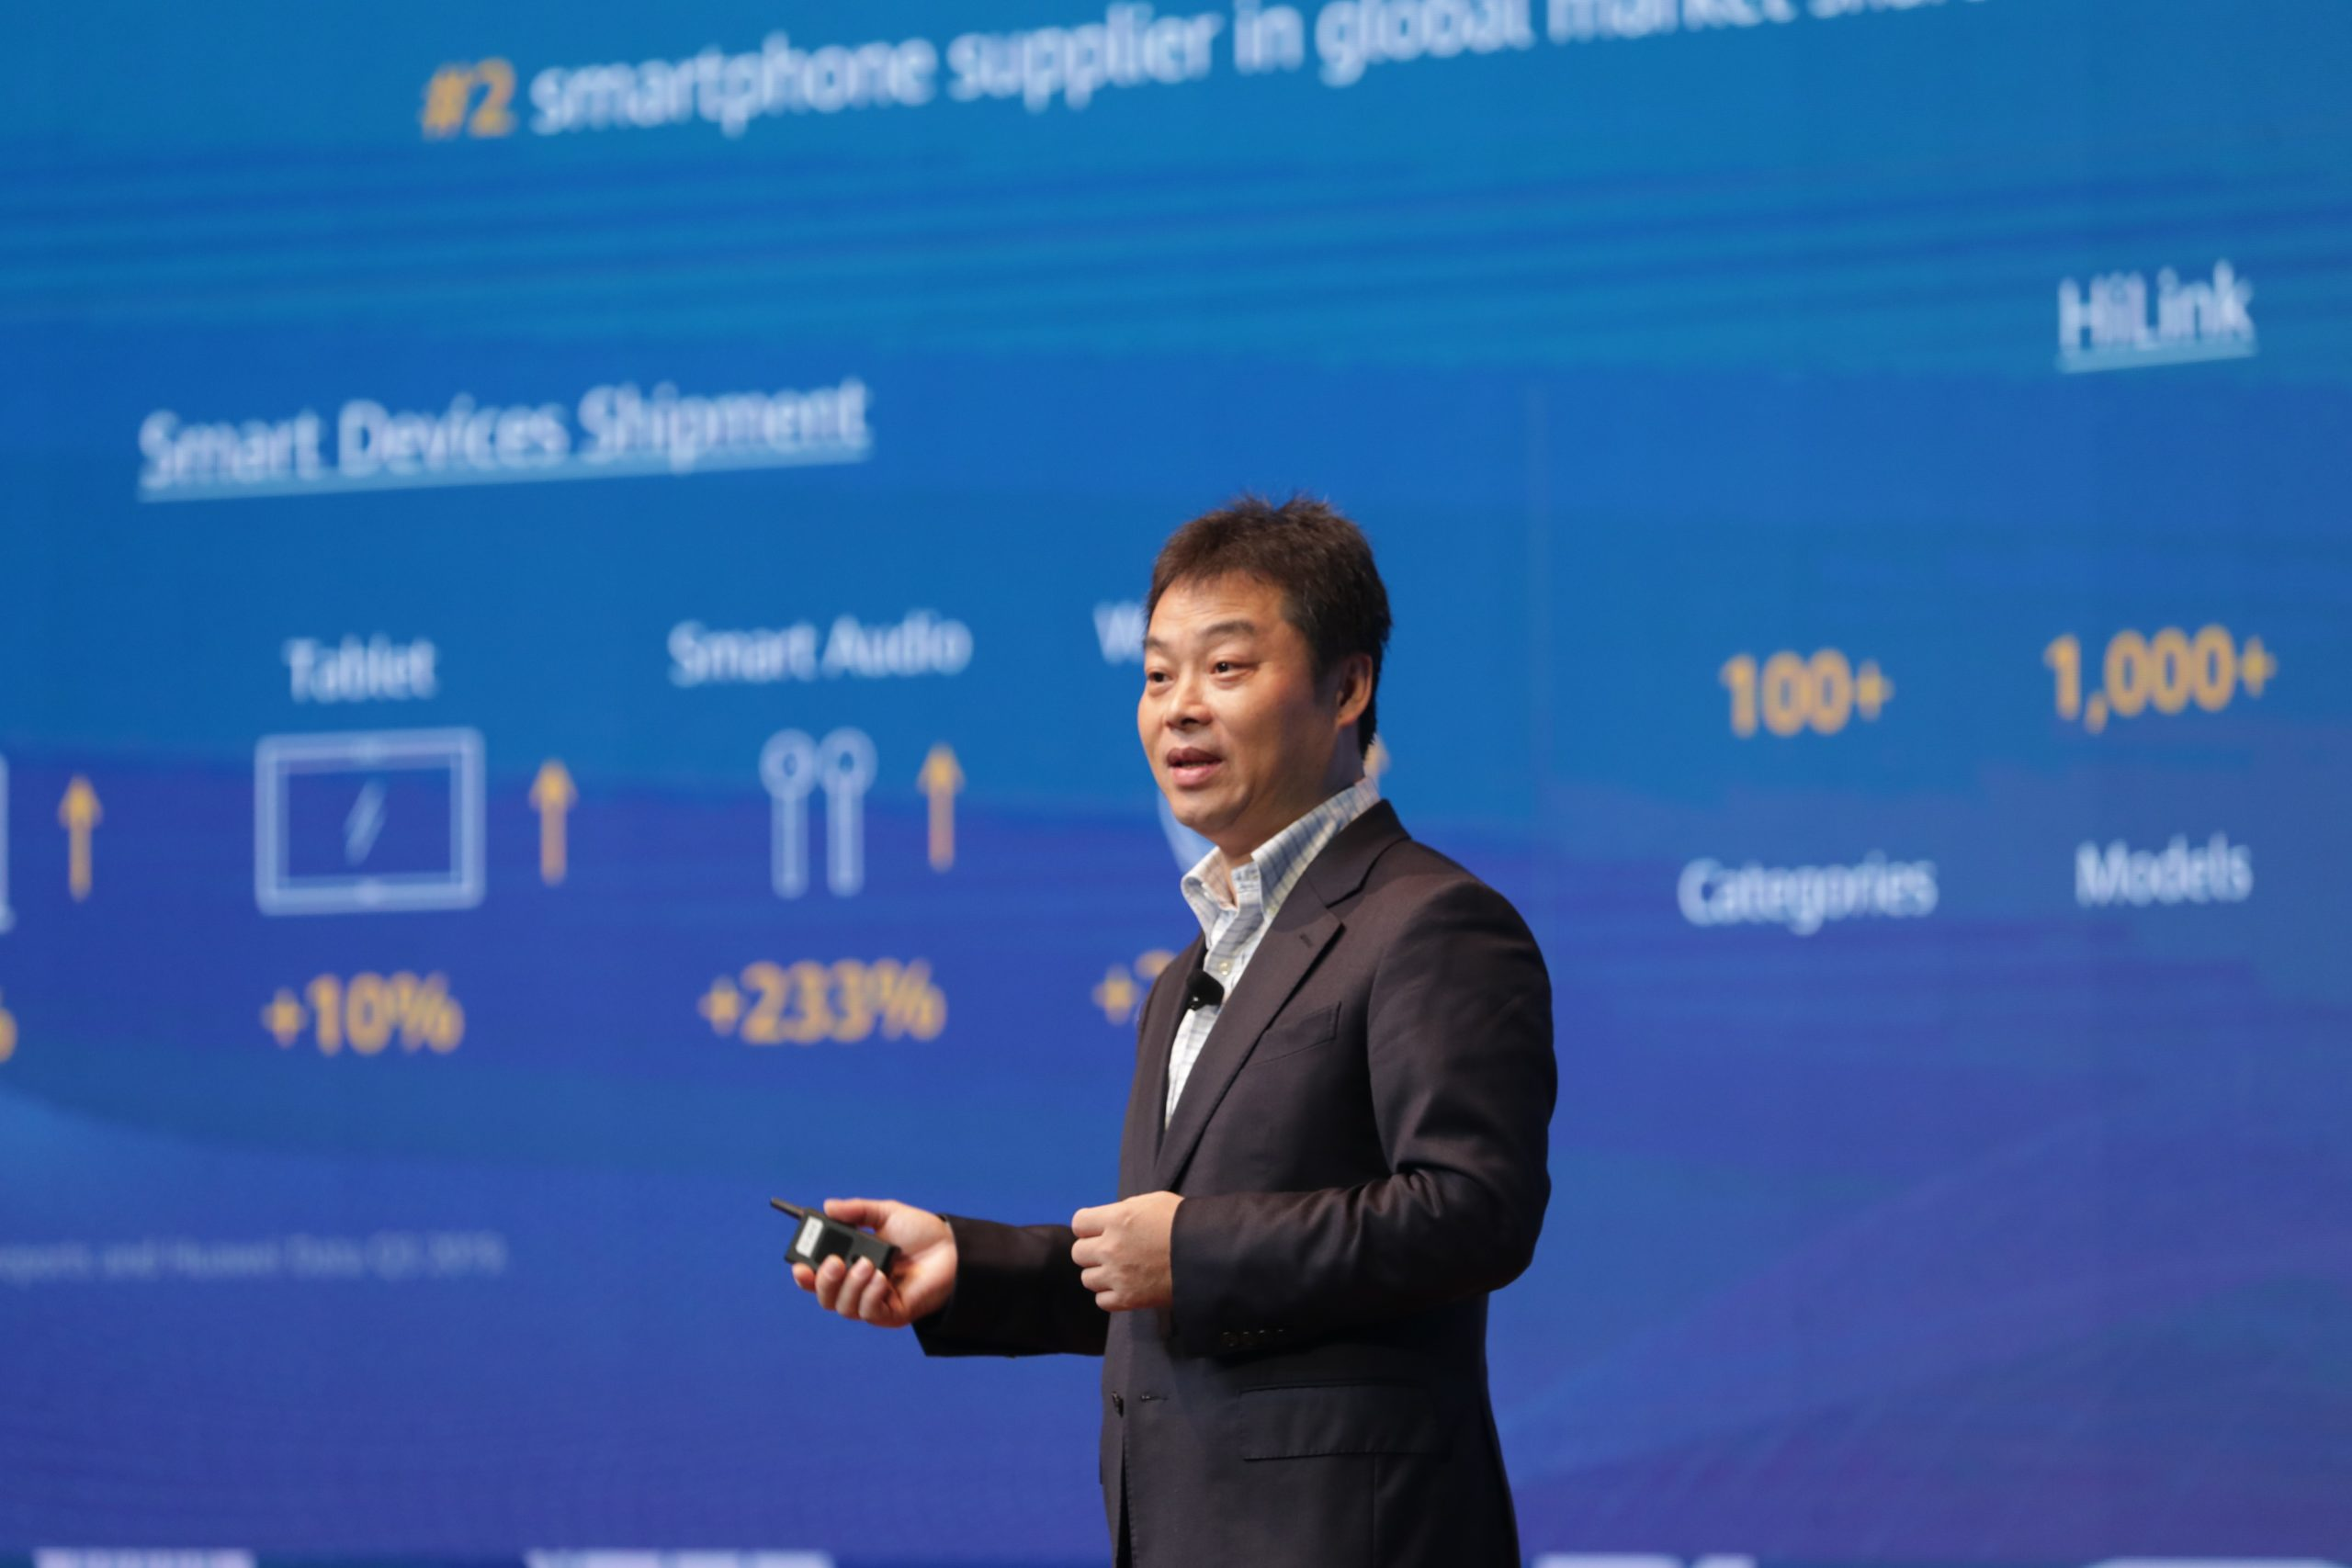 Strengthening Business Growth through the HUAWEI Ecosystem 1